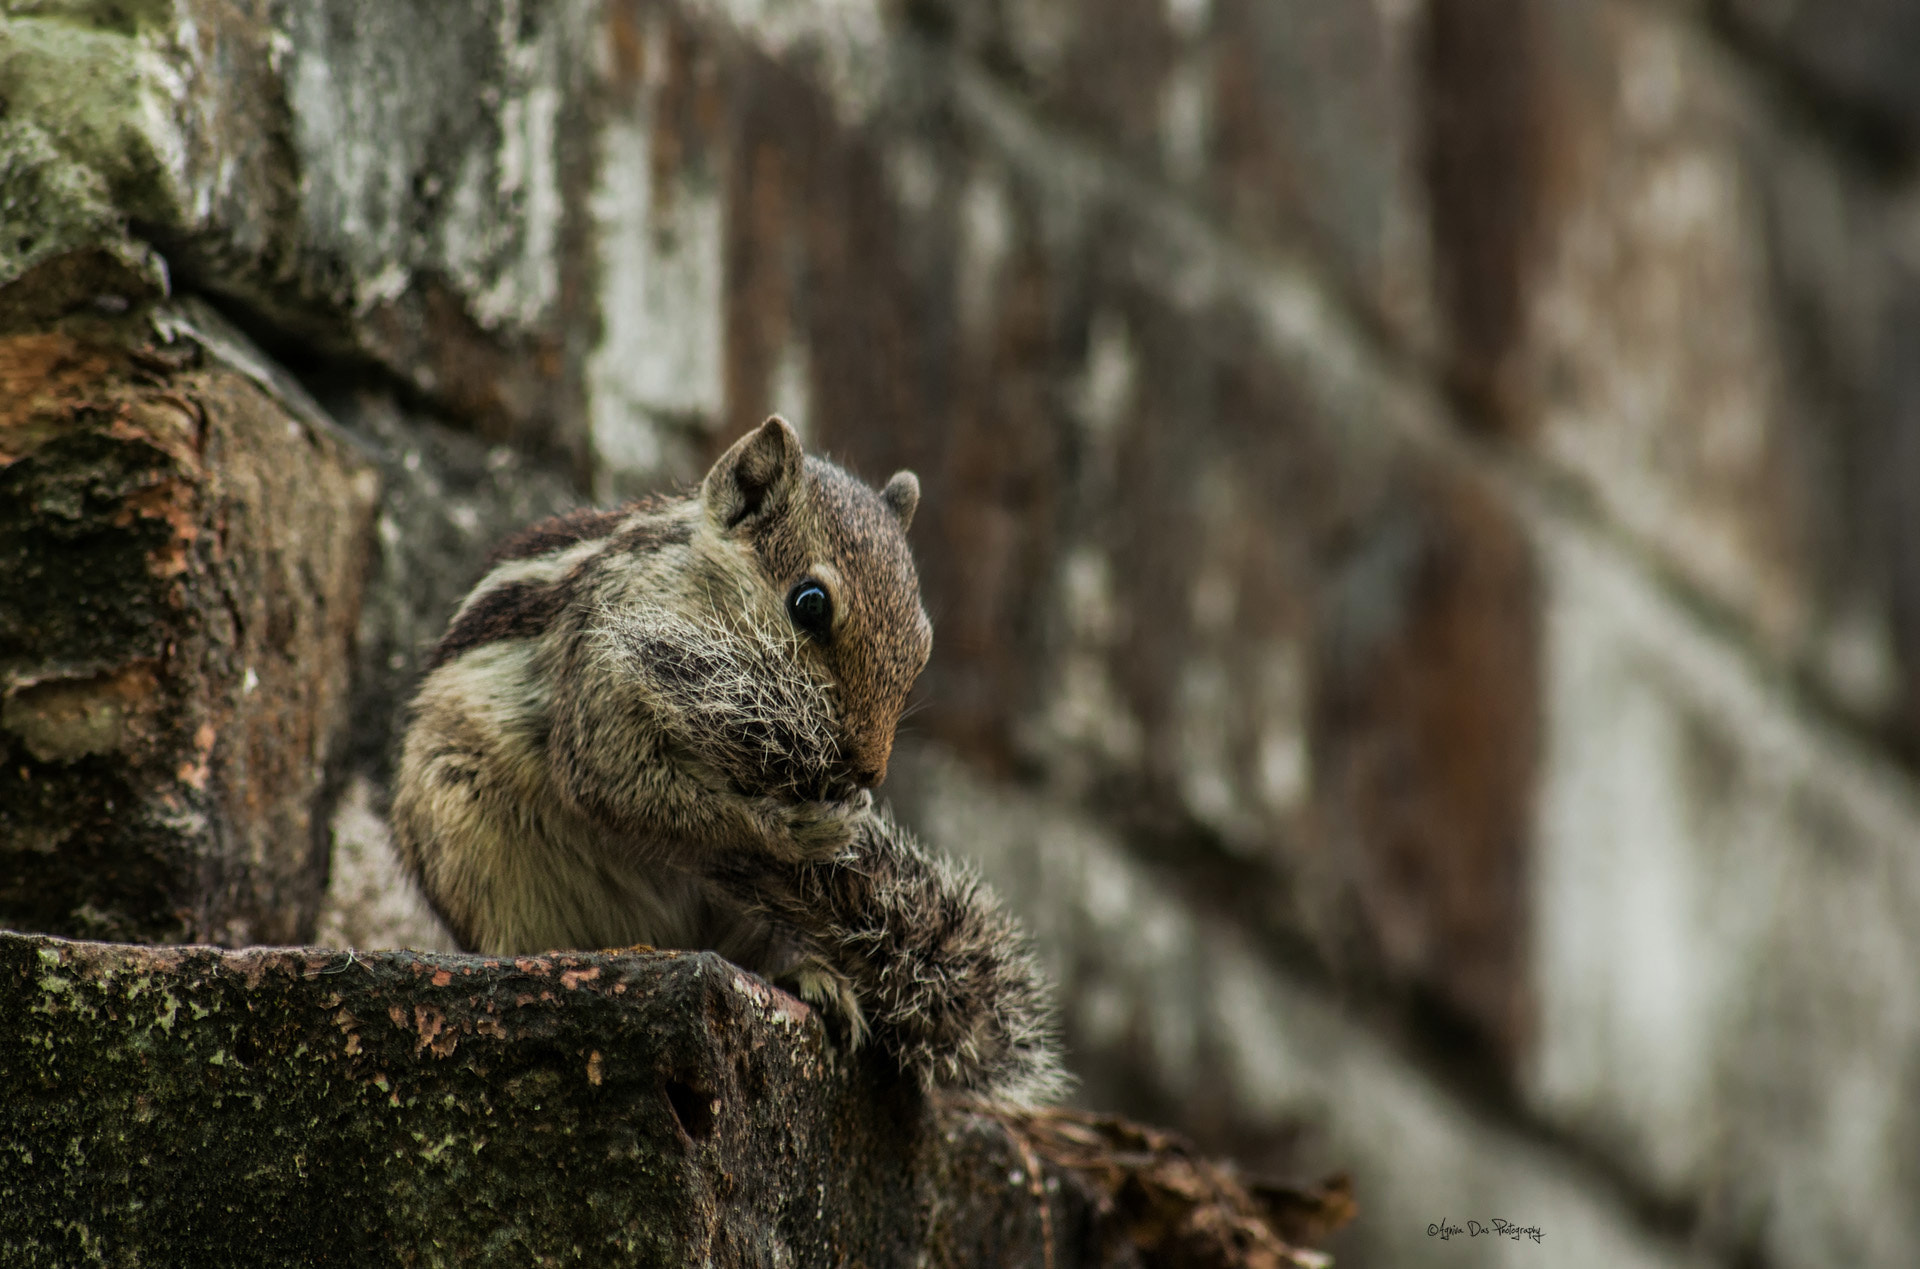 Photograph Palm Squirrel by Agniva Das on 500px